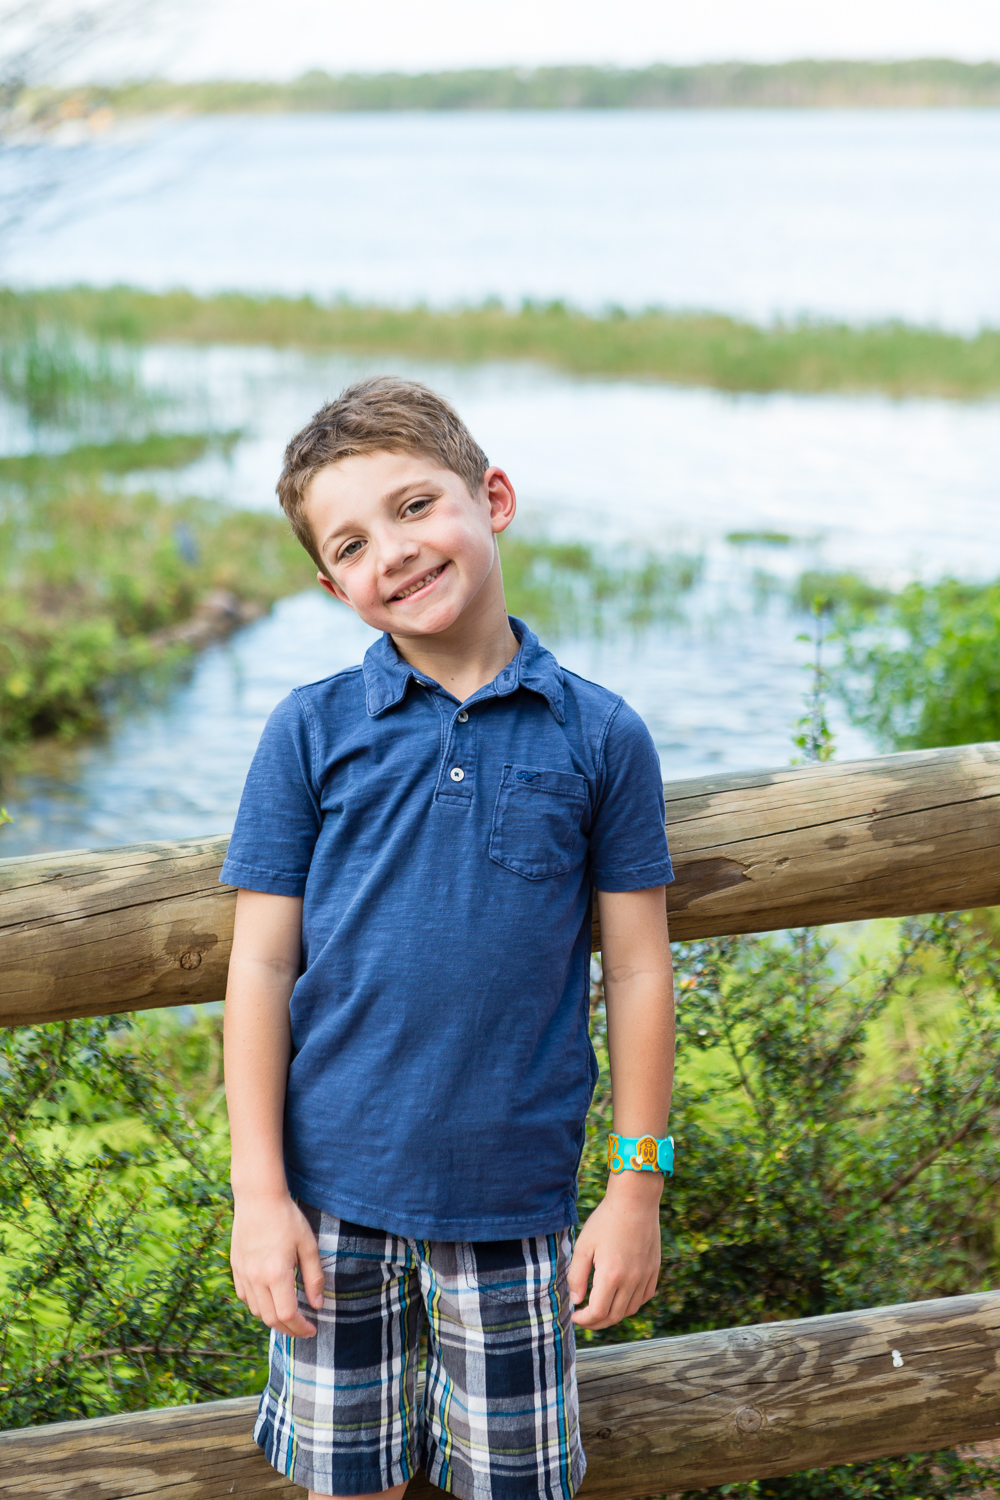 Family Portraits at Disney's Wilderness Lodge